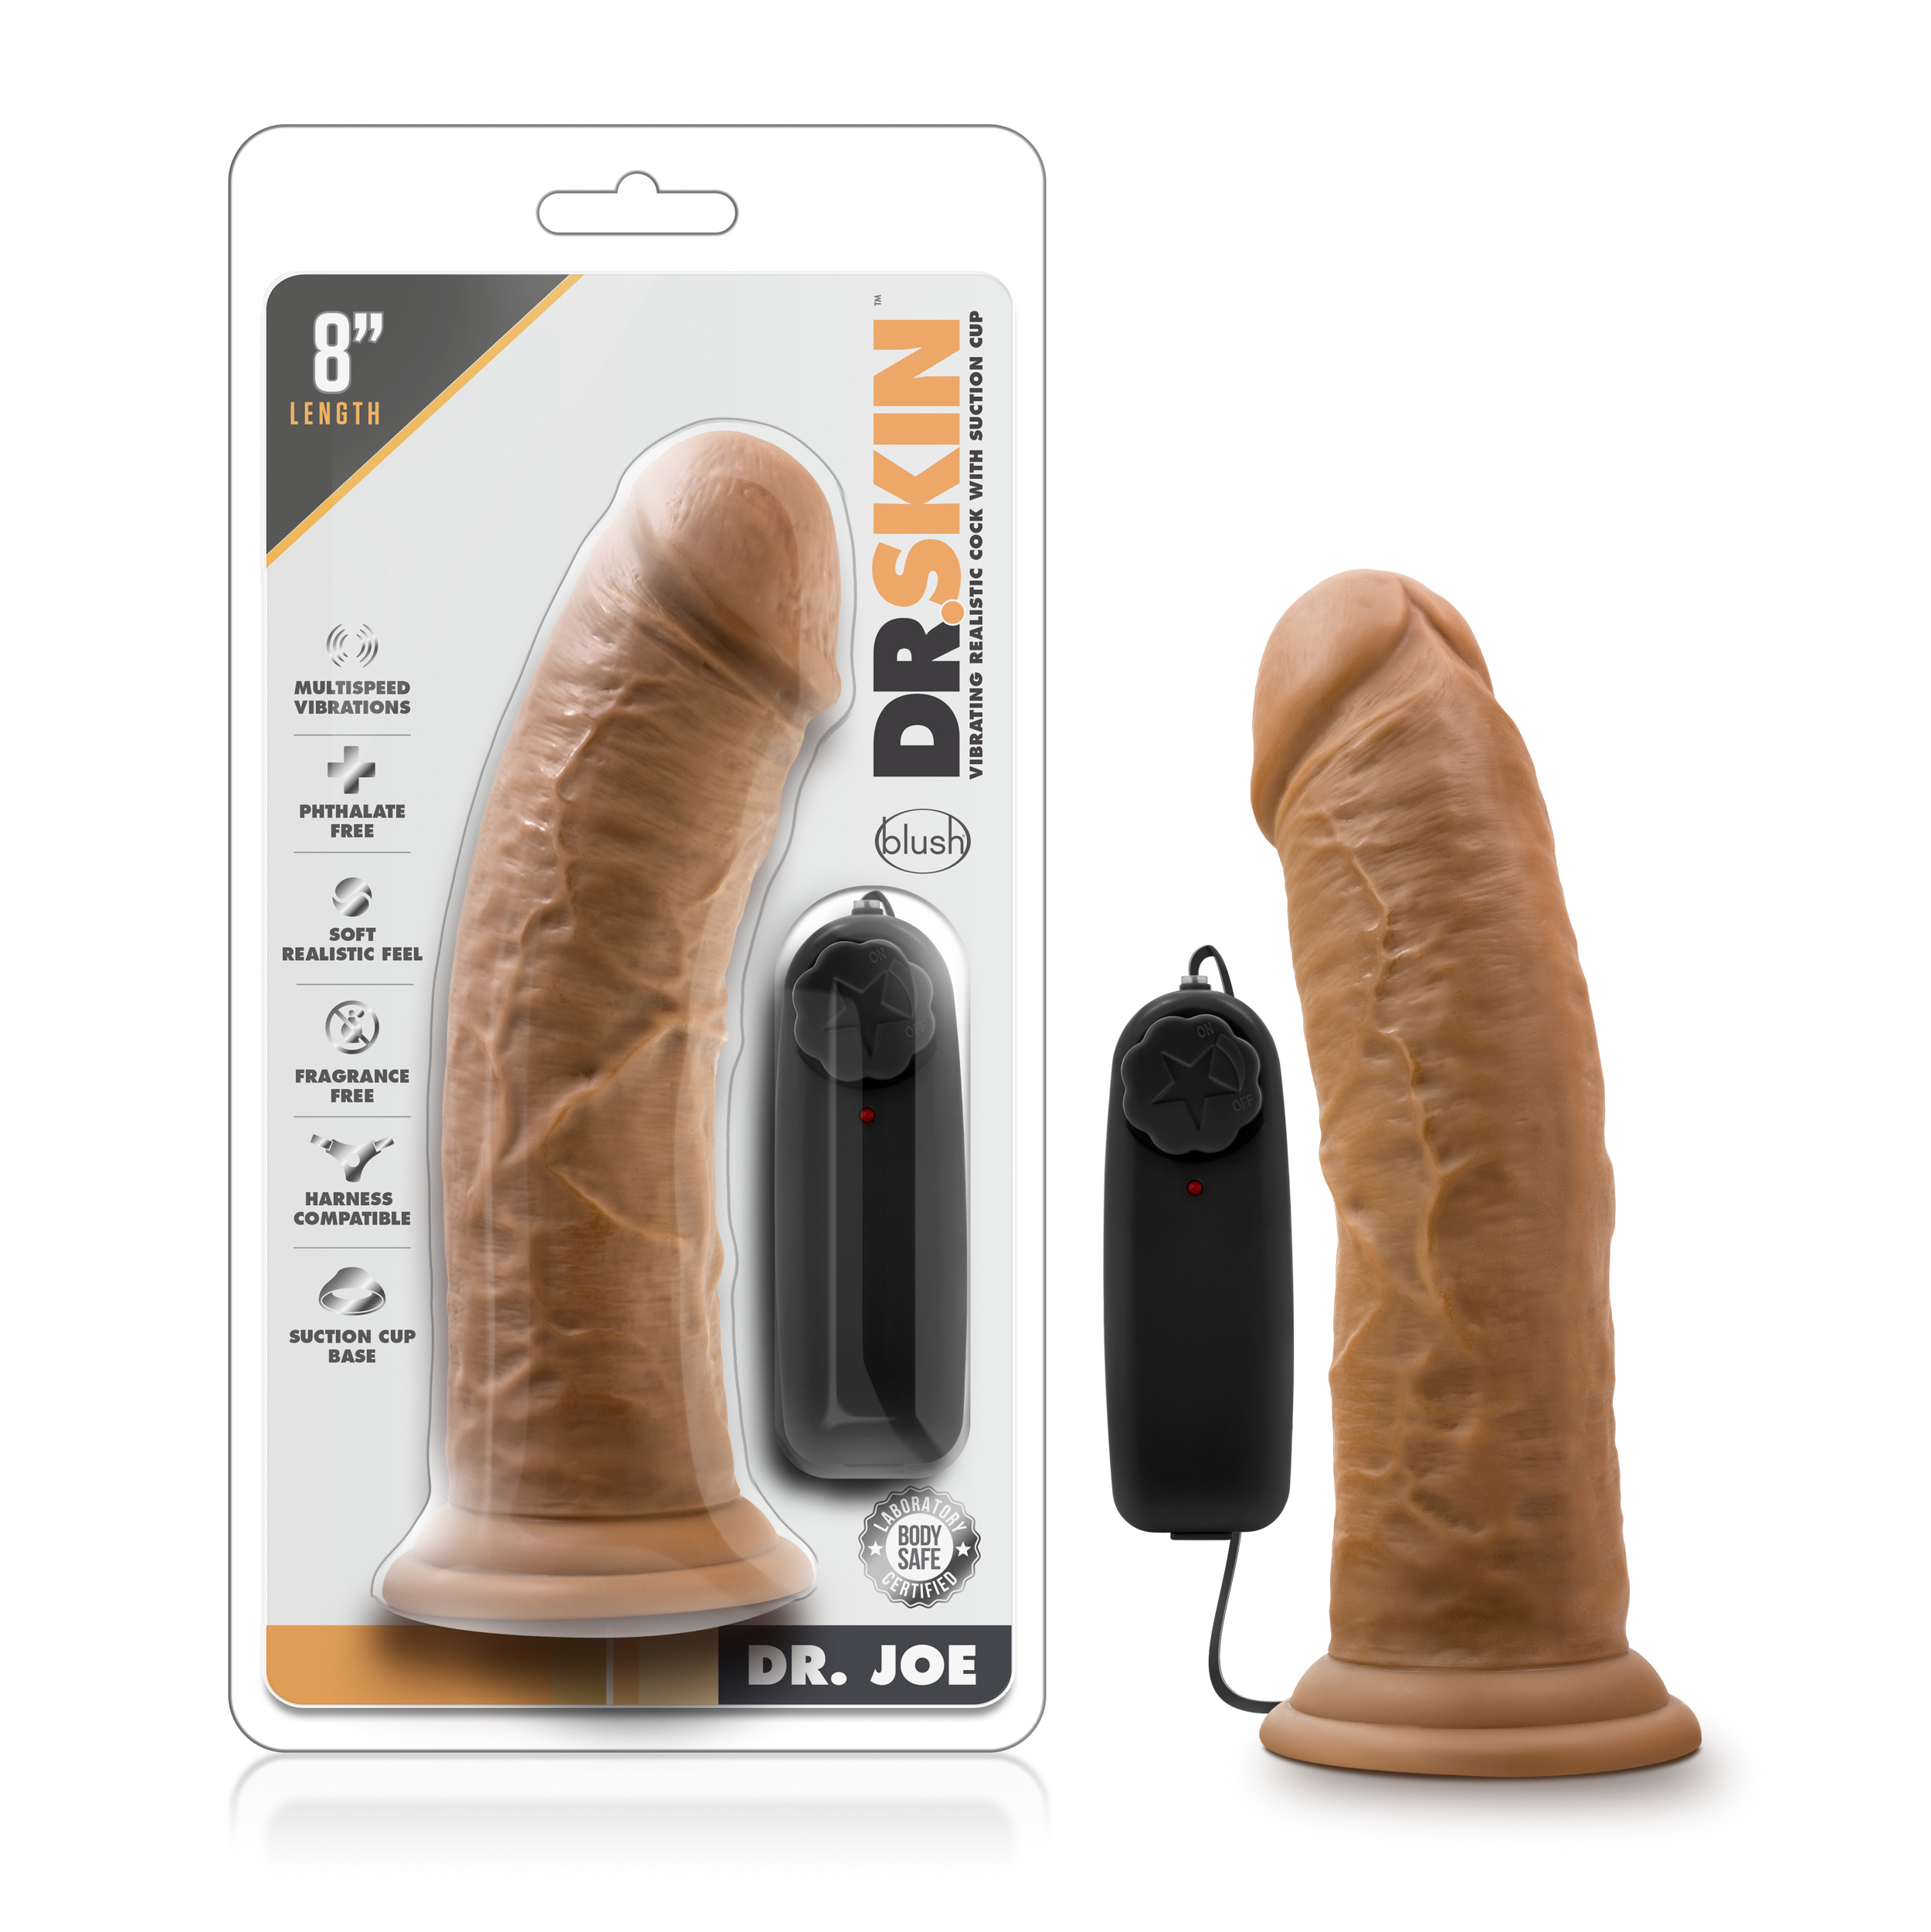 Dr. Skin - Dr. Joe - 8 Inch Vibrating Cock with Suction Cup - Mocha